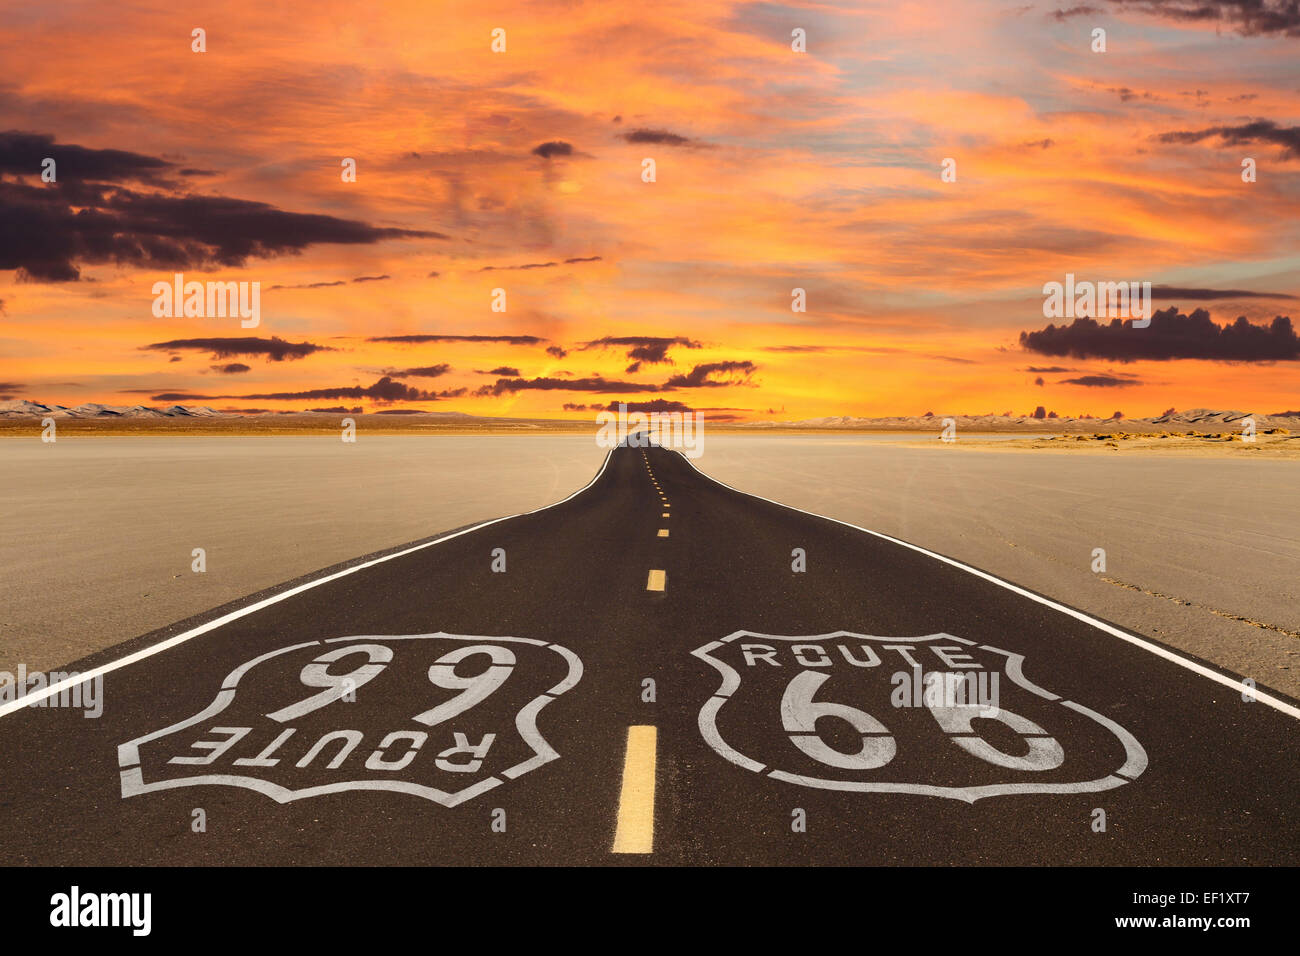 Romanticized rendition of Route 66 crossing a dry lake bed in the vast Mojave desert. - Stock Image